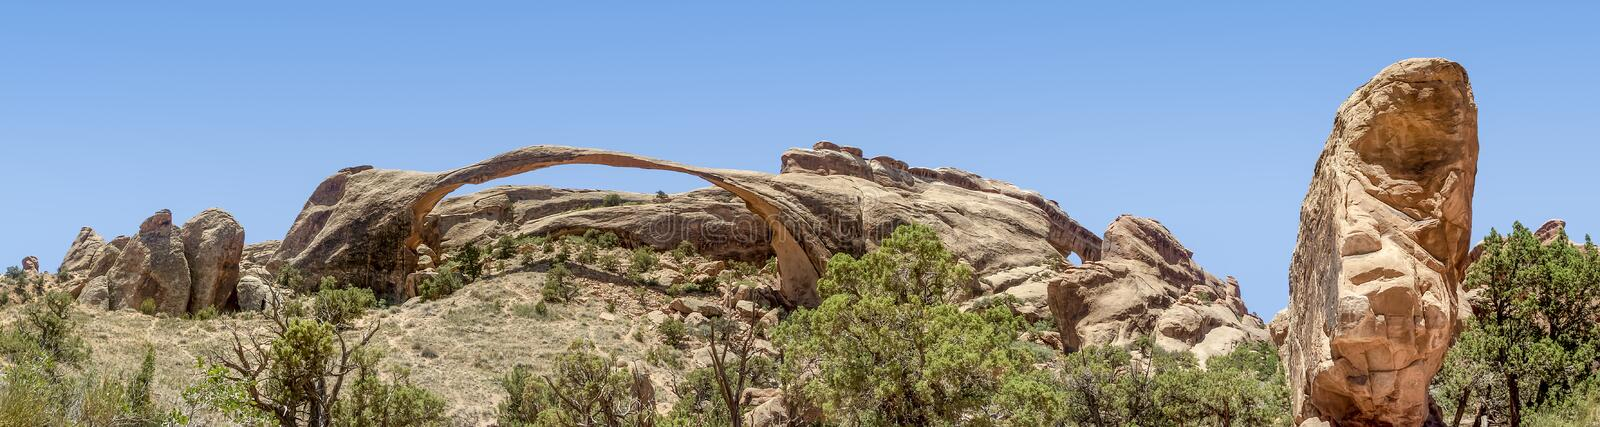 Landscape Arch Panorama - Arches National Park stock photos